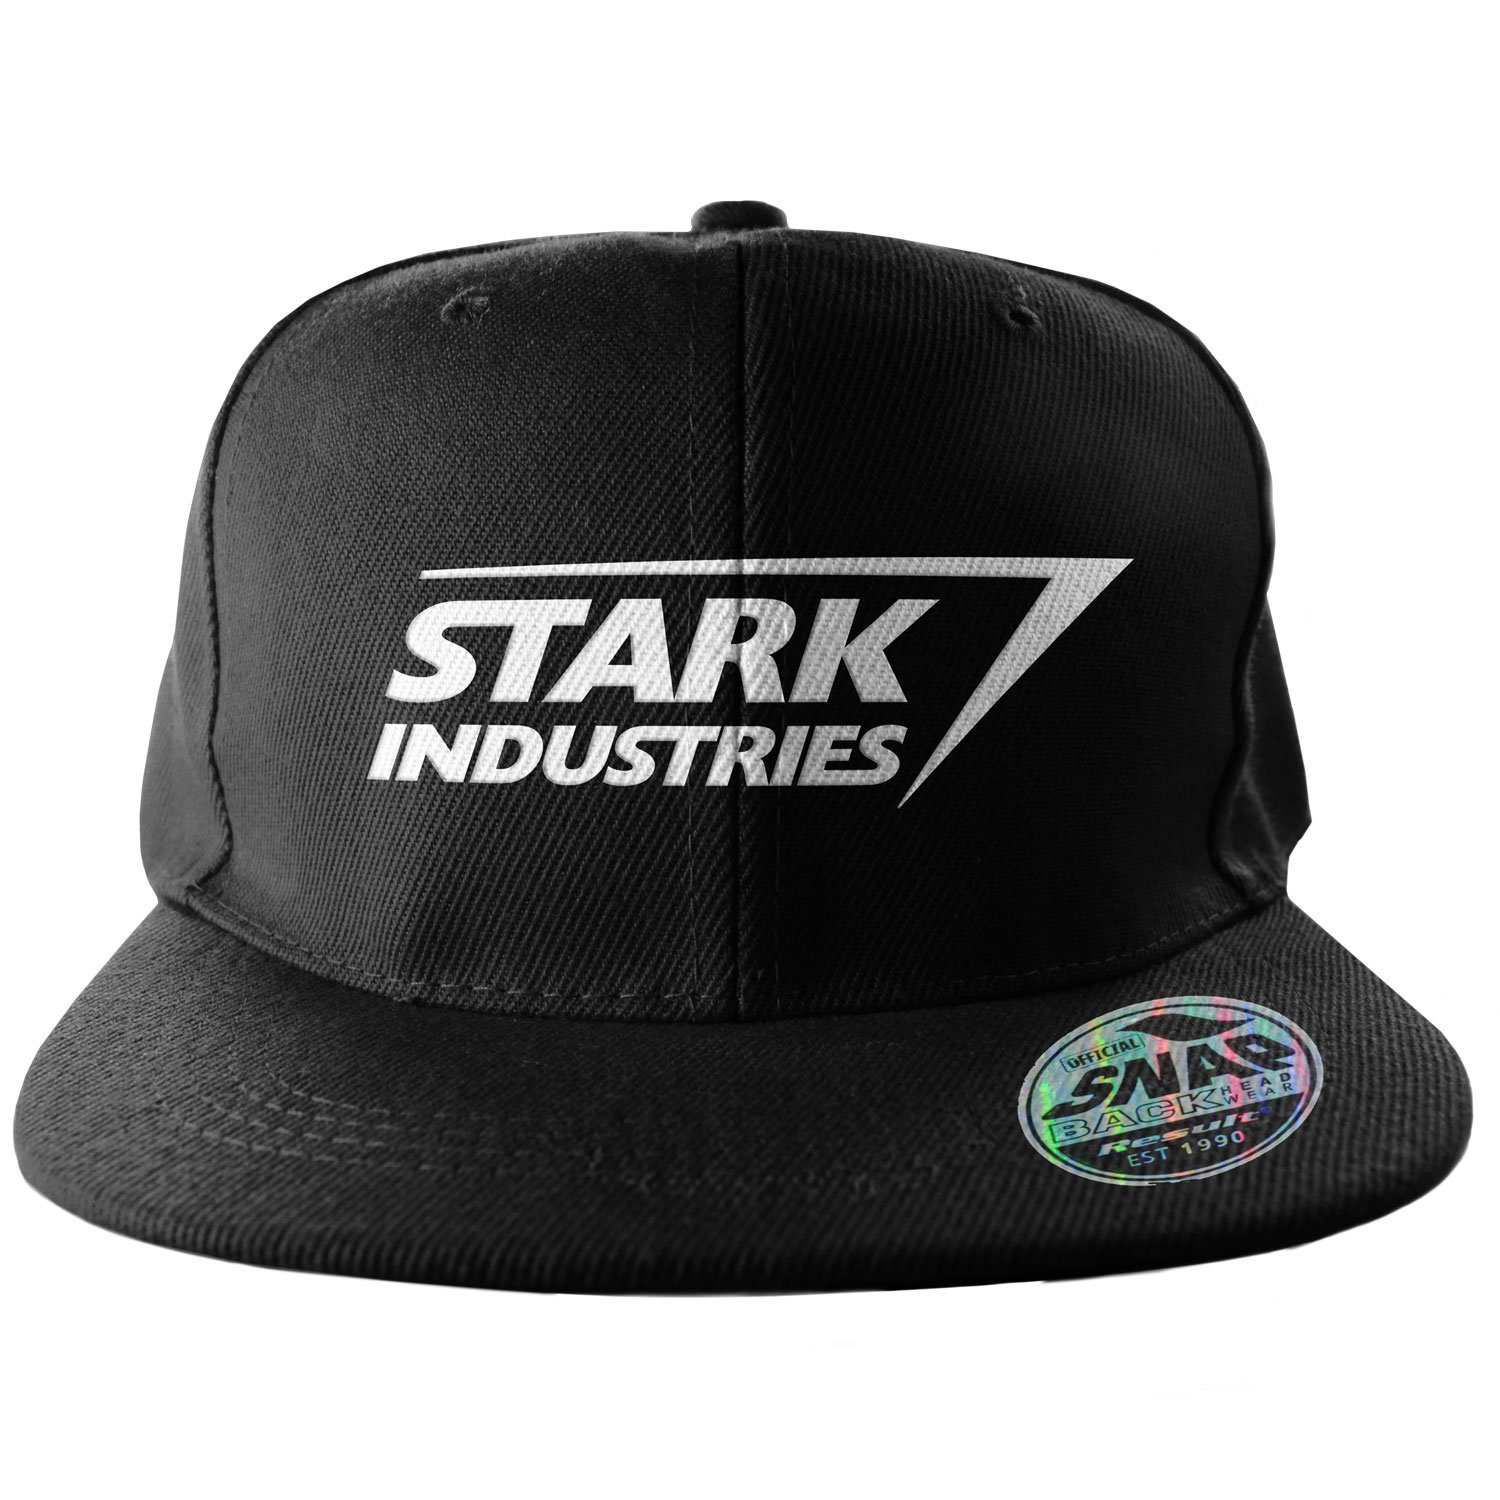 IRON MAN OFFICIAL MARVEL SNAPBACK ADJUSTABLE CAP HAT NEW WITH TAGS